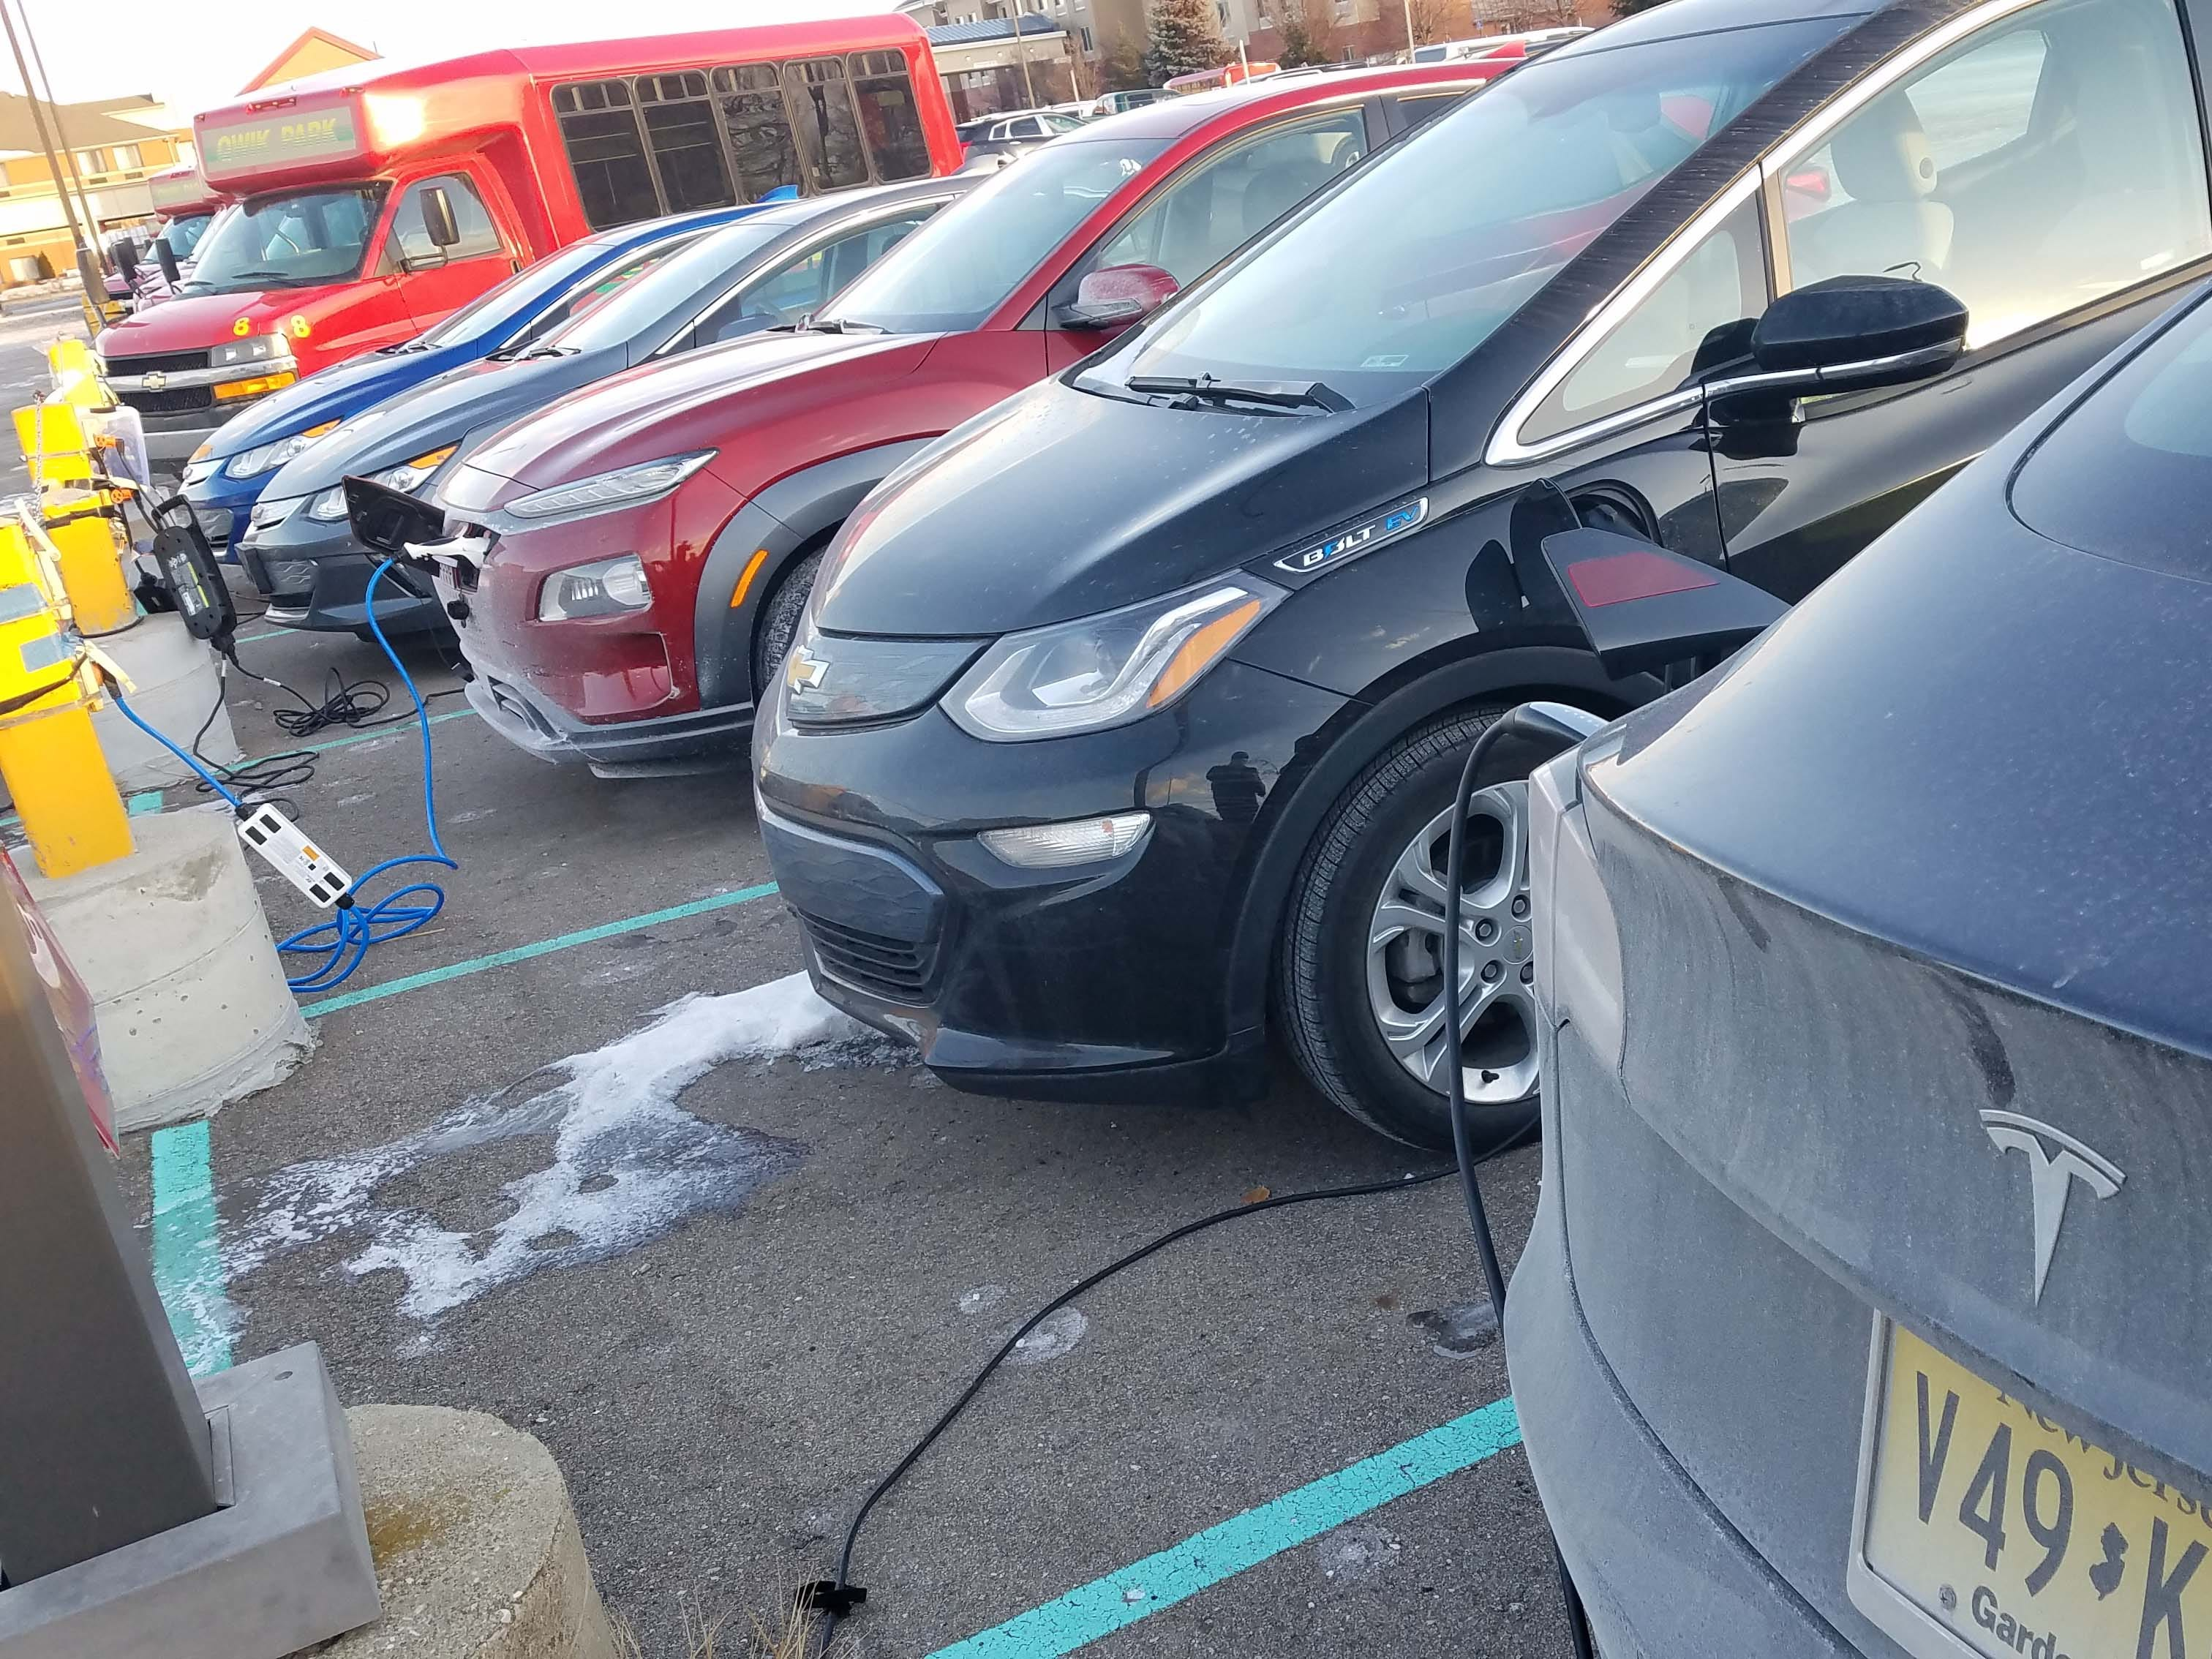 Charging stations are hard to come by in Metro Detroit. The 2019 Hyundai Kona EV (third from right) feeds at the electron teat with other battery-powered cars at QuickPark parking lot near Metro Airport.